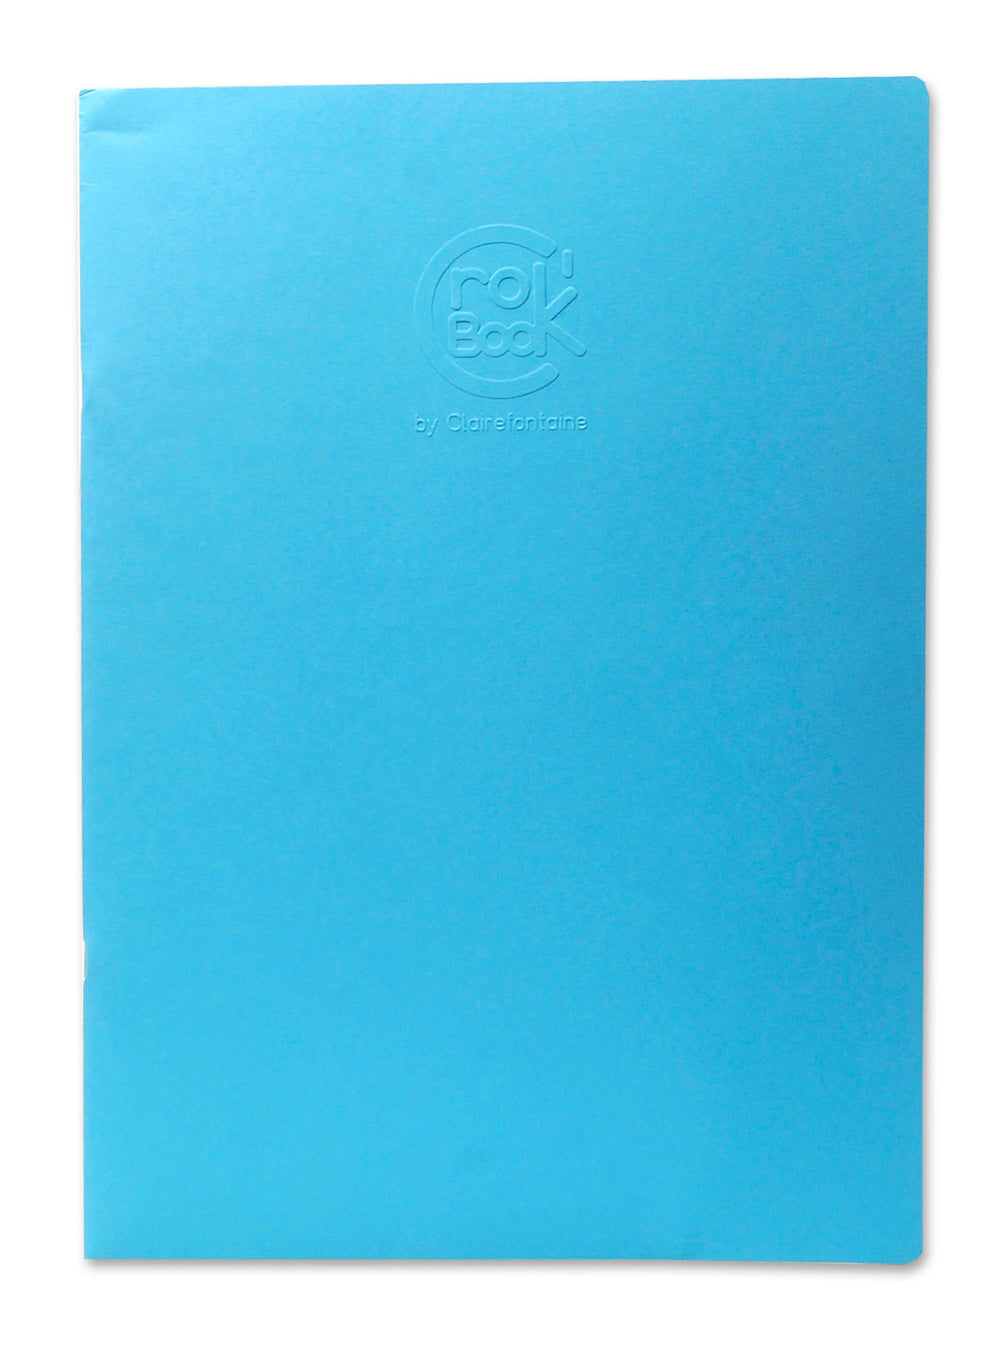 Clairefontaine Croc Book A3 Sketch Notebook